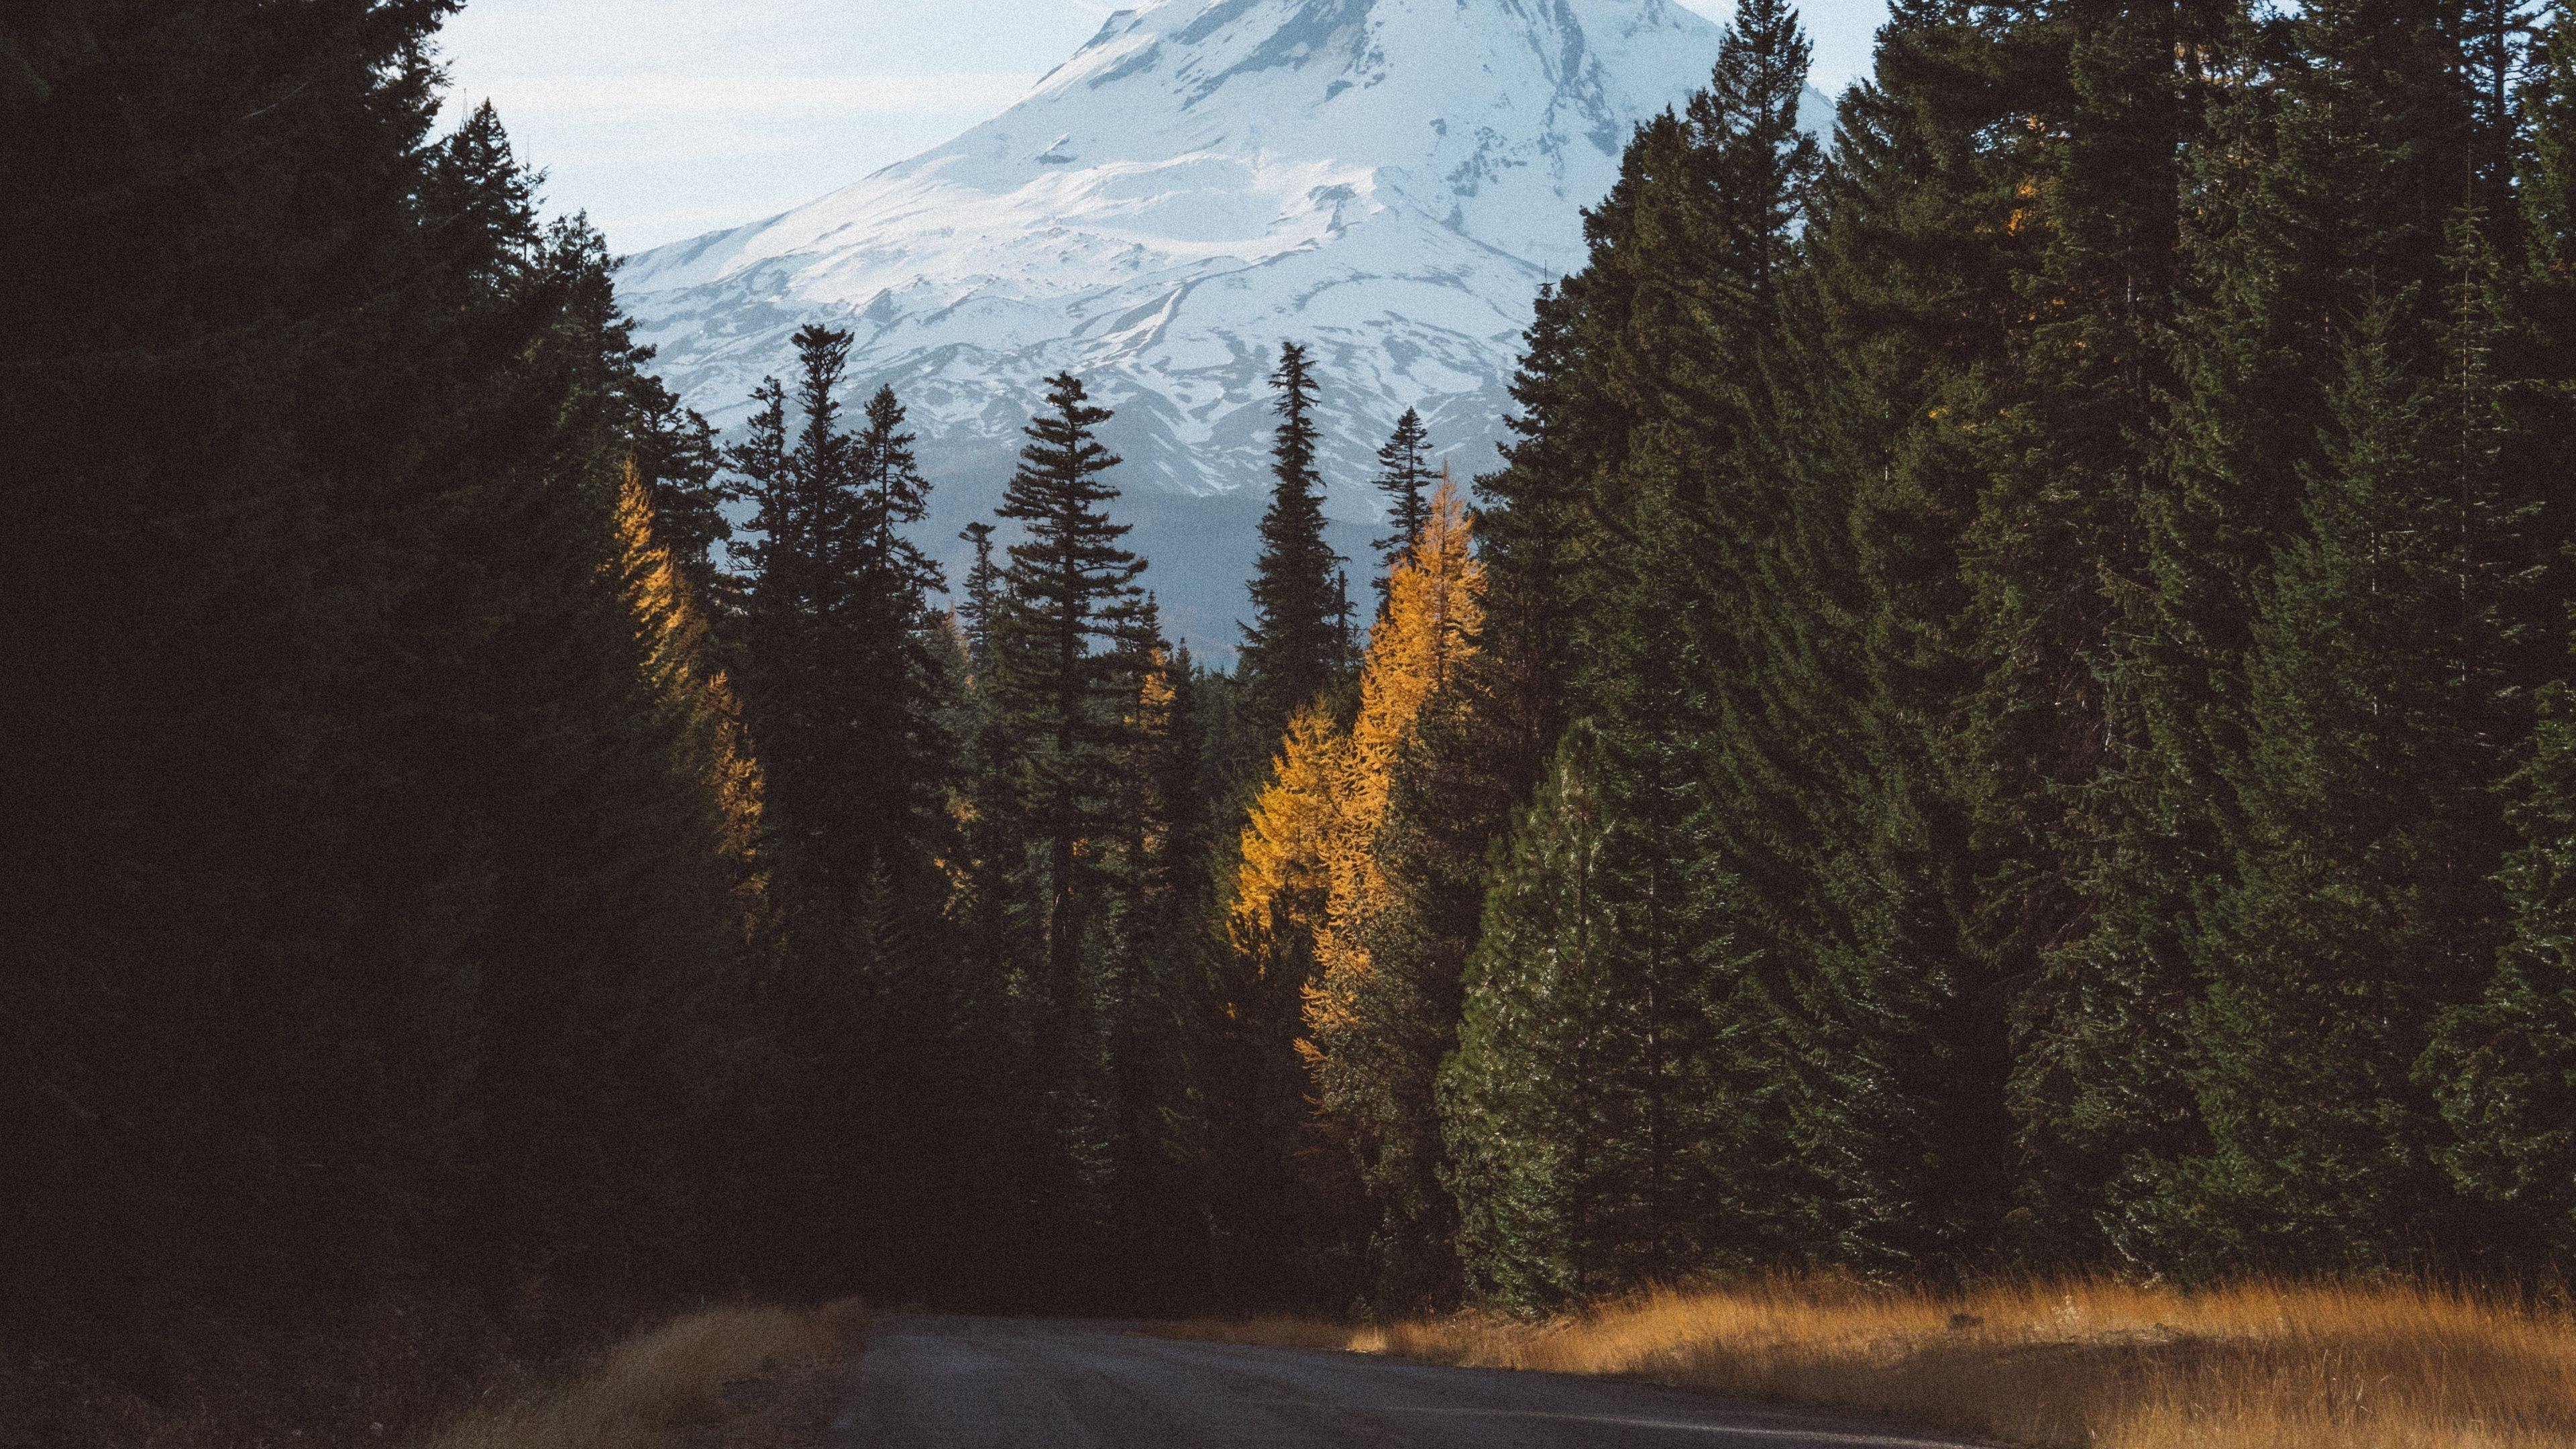 Forest Mountains Road 4k Road Mountains Forest Forest Mountain Mountains Forest Hd wallpaper road turn trees mountain